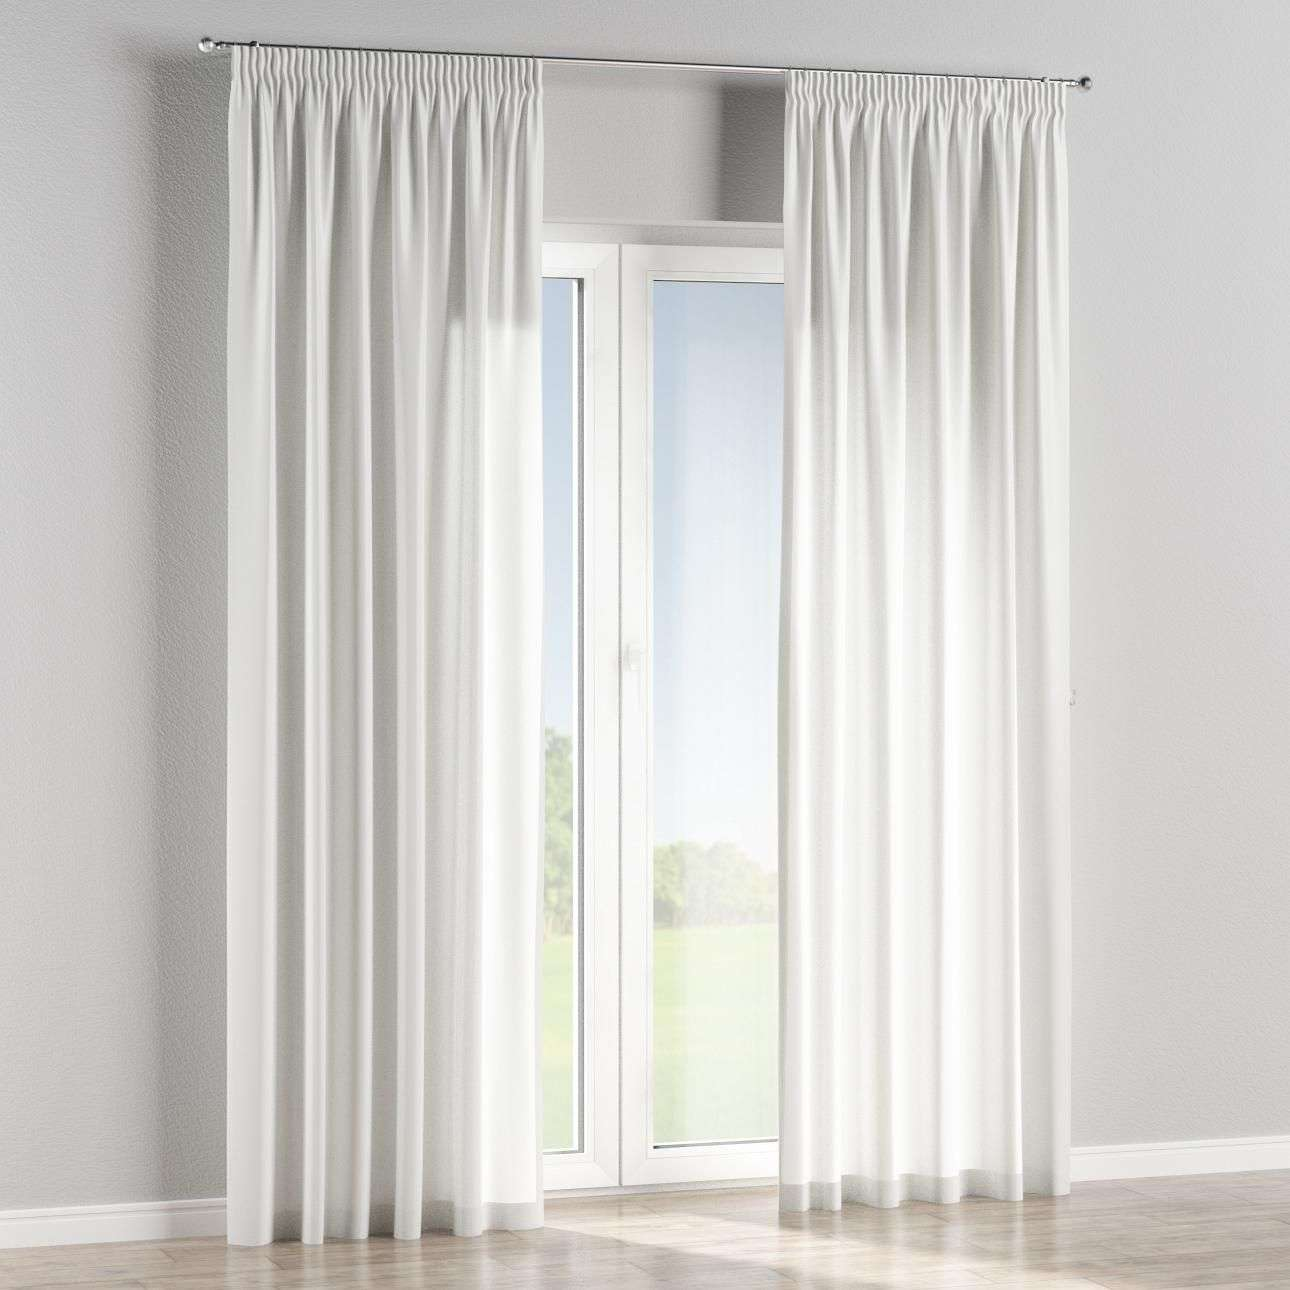 Pencil pleat curtains in collection Taffeta , fabric: 103-85